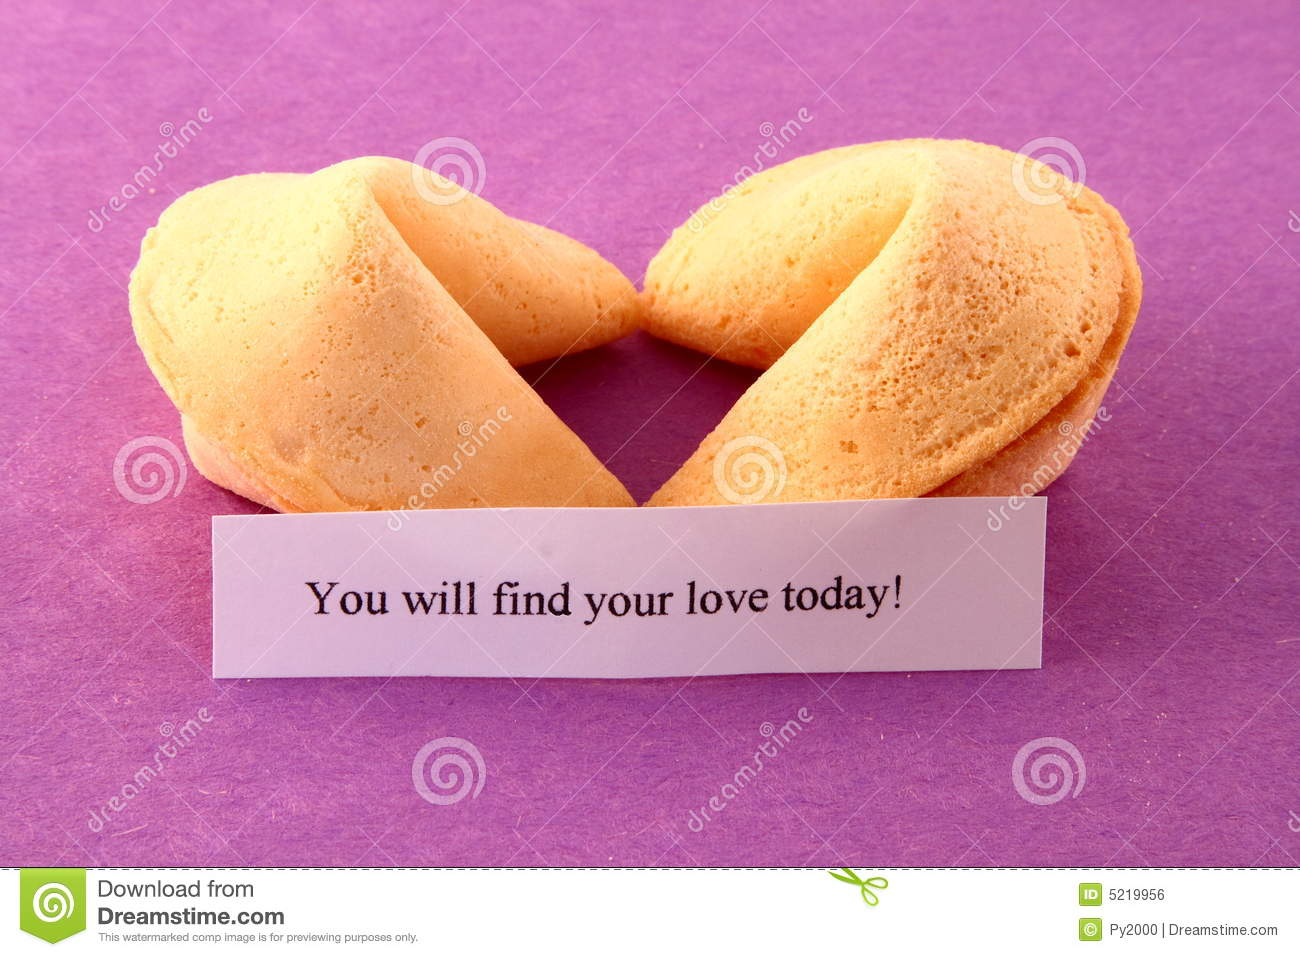 Fortune cookie images on Favim.com